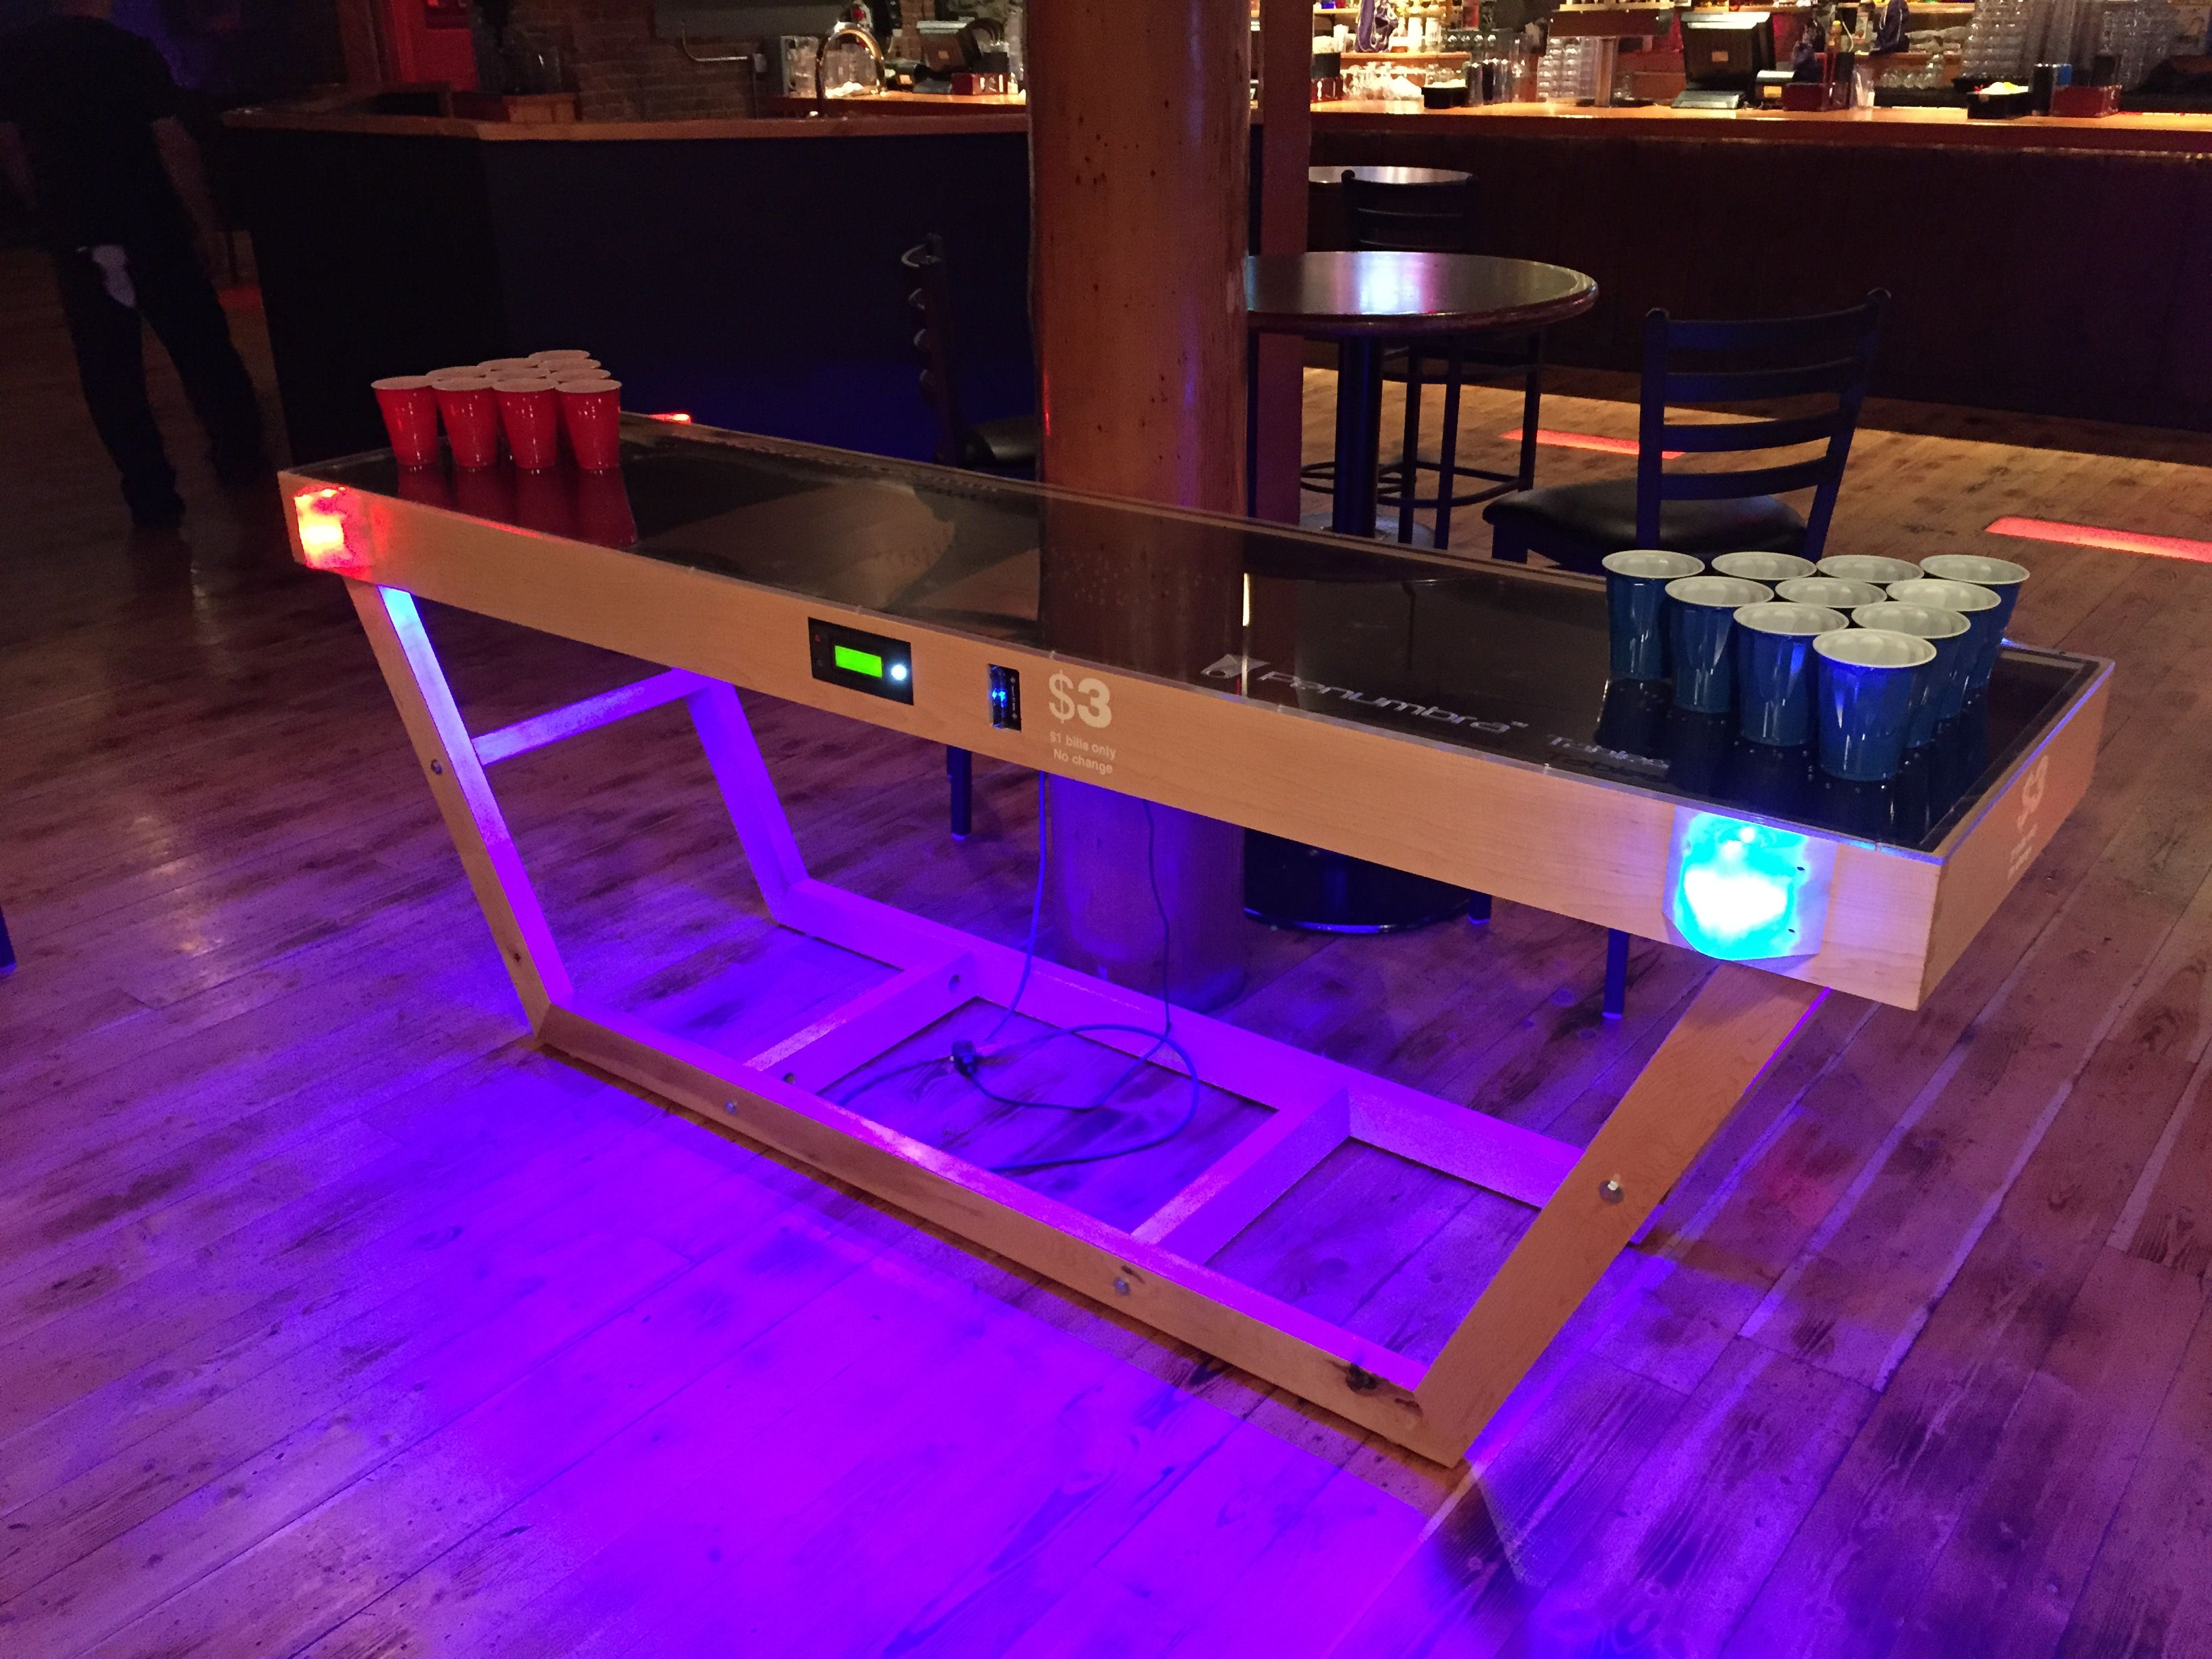 Homemade beer pong table - Check Out These Awesome Beer Pong Tables These Include Folding Portable Inflatable Pool Floating Led Glow In The Dark Mini Beer Pong Tables